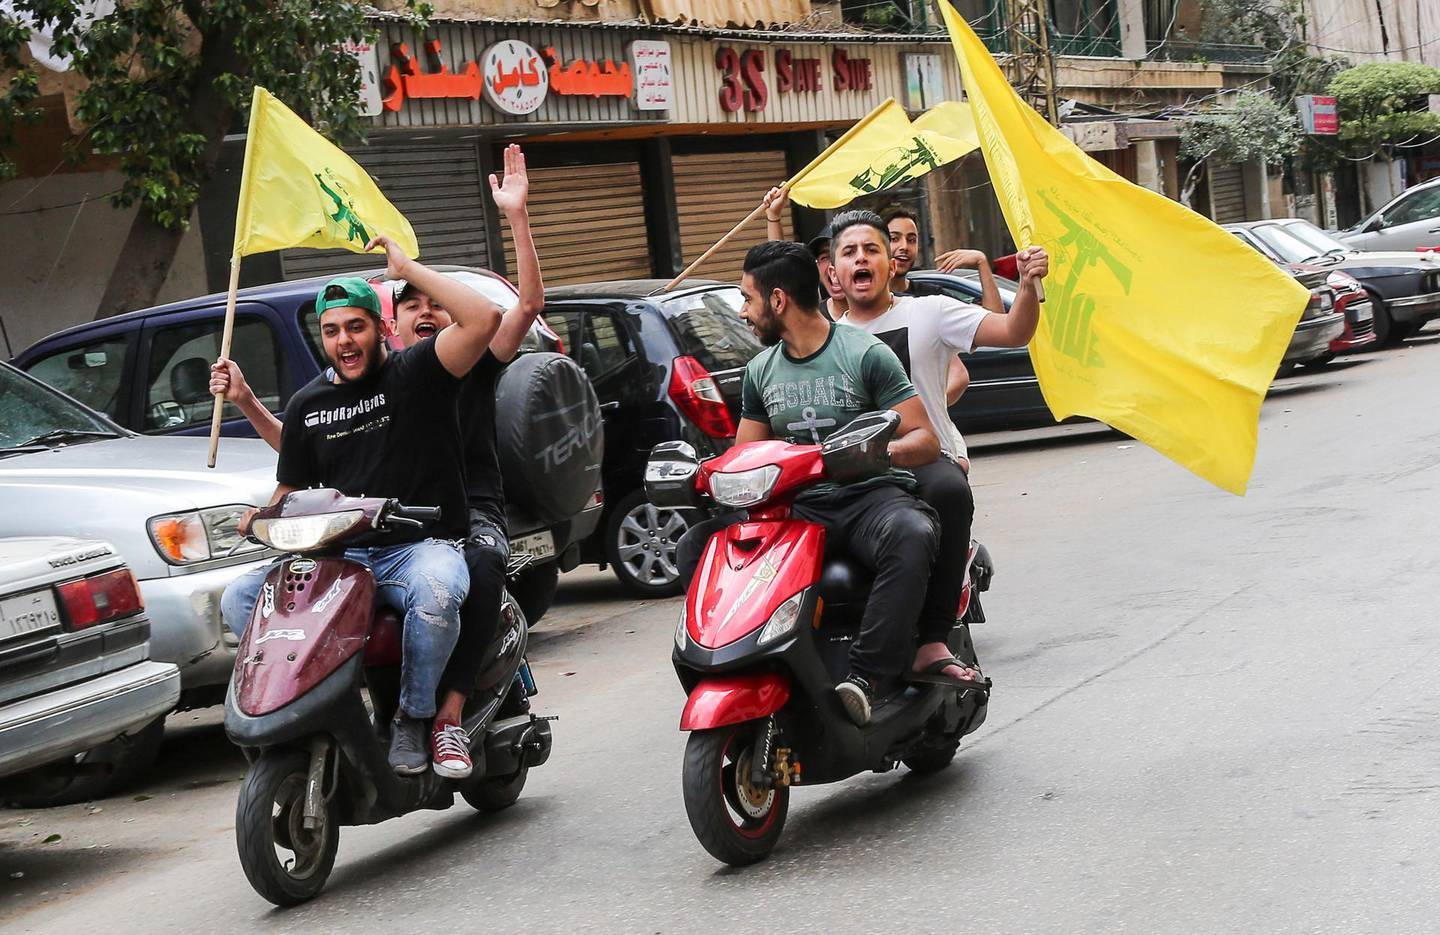 epa06715567 Supporter of Hezbollah carry their party flags and ride motorcycles at the southern suburb of Beirut, Lebanon, 06 May 2018. There are 976 candidates, including 111 women, competing for 128 seats in parliament divided equally between the Muslim and Christian sects,  during the general parliamentary elections after nine years of forced extension, through a new electoral law that adopts the percentage.  EPA/NABIL MOUNZER